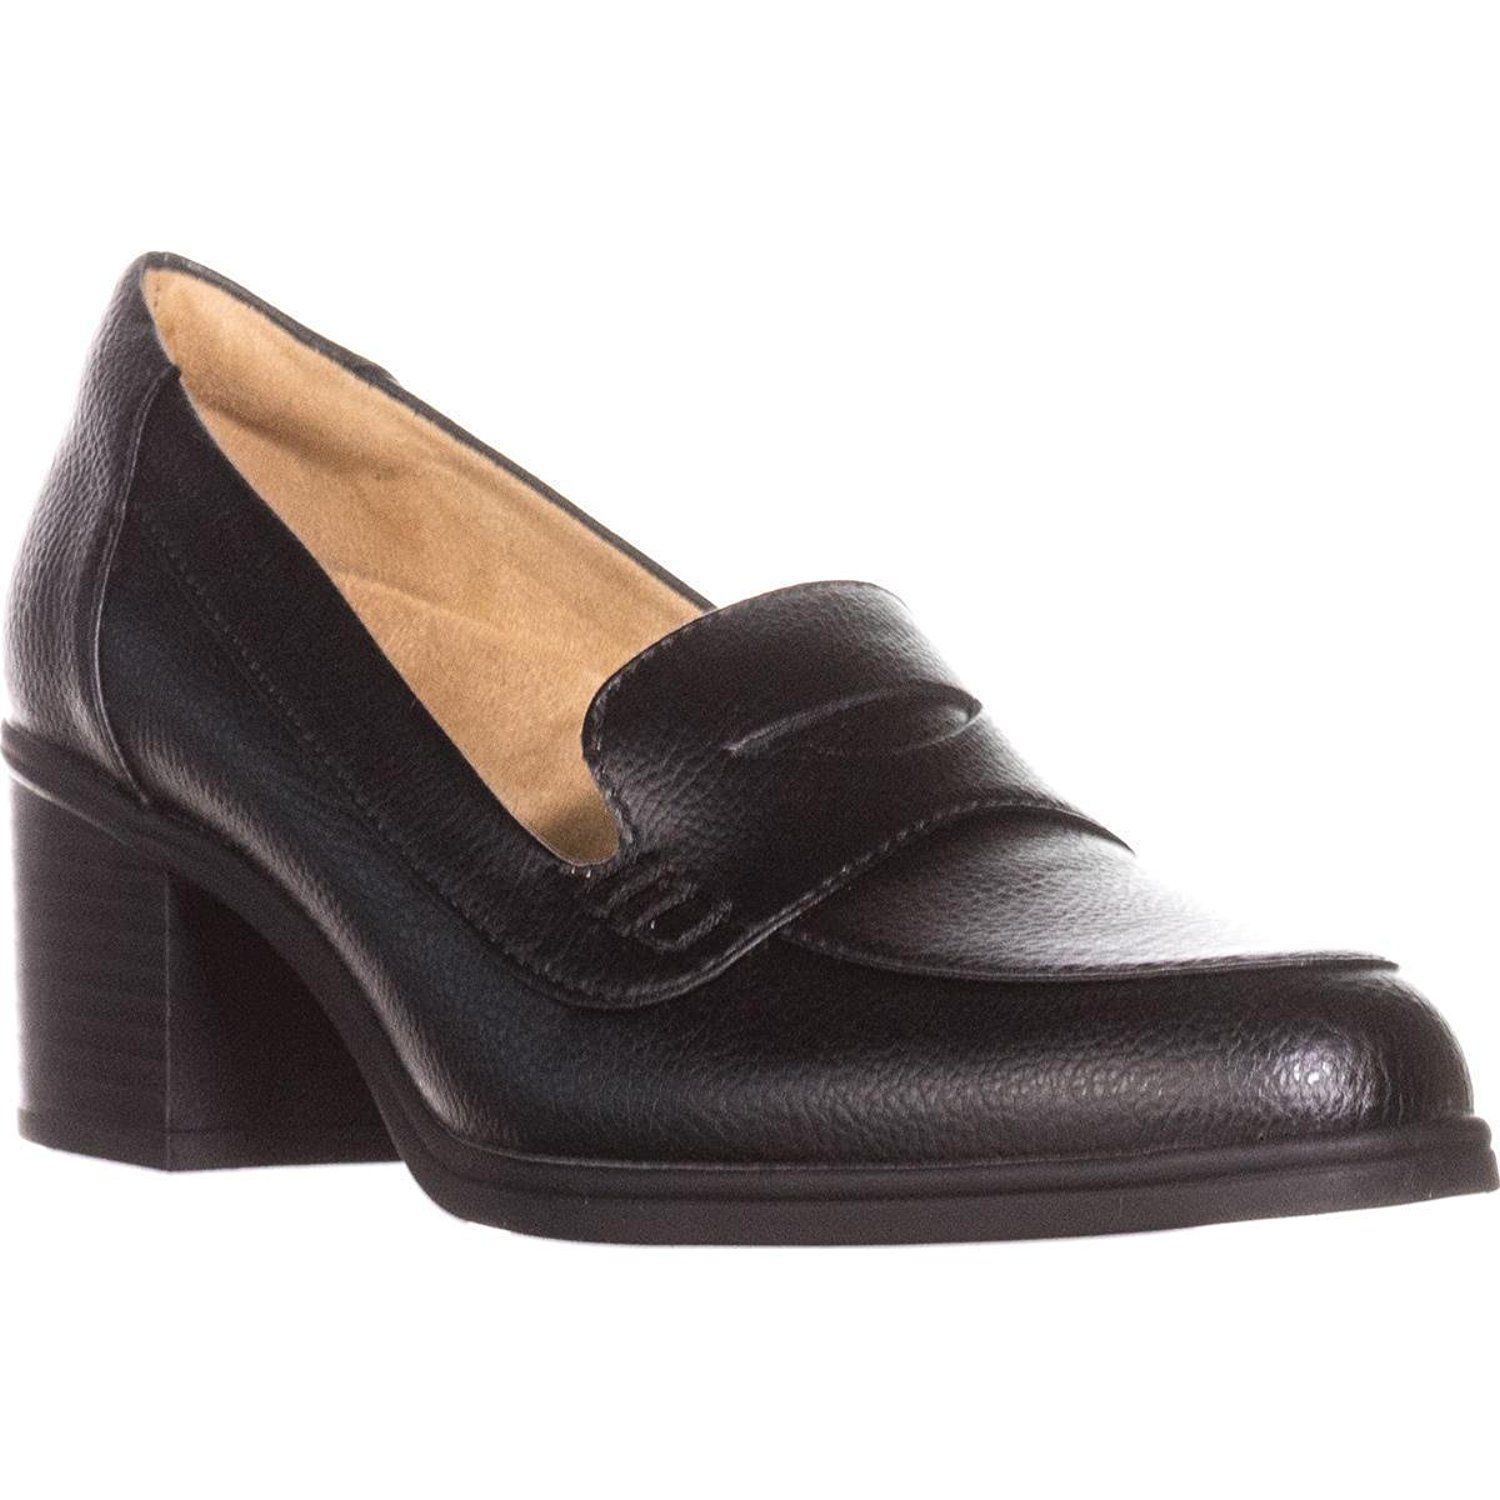 9524b68dff1 Get Quotations · Naturalizer Hilly Loafer Pumps - Black Tumble